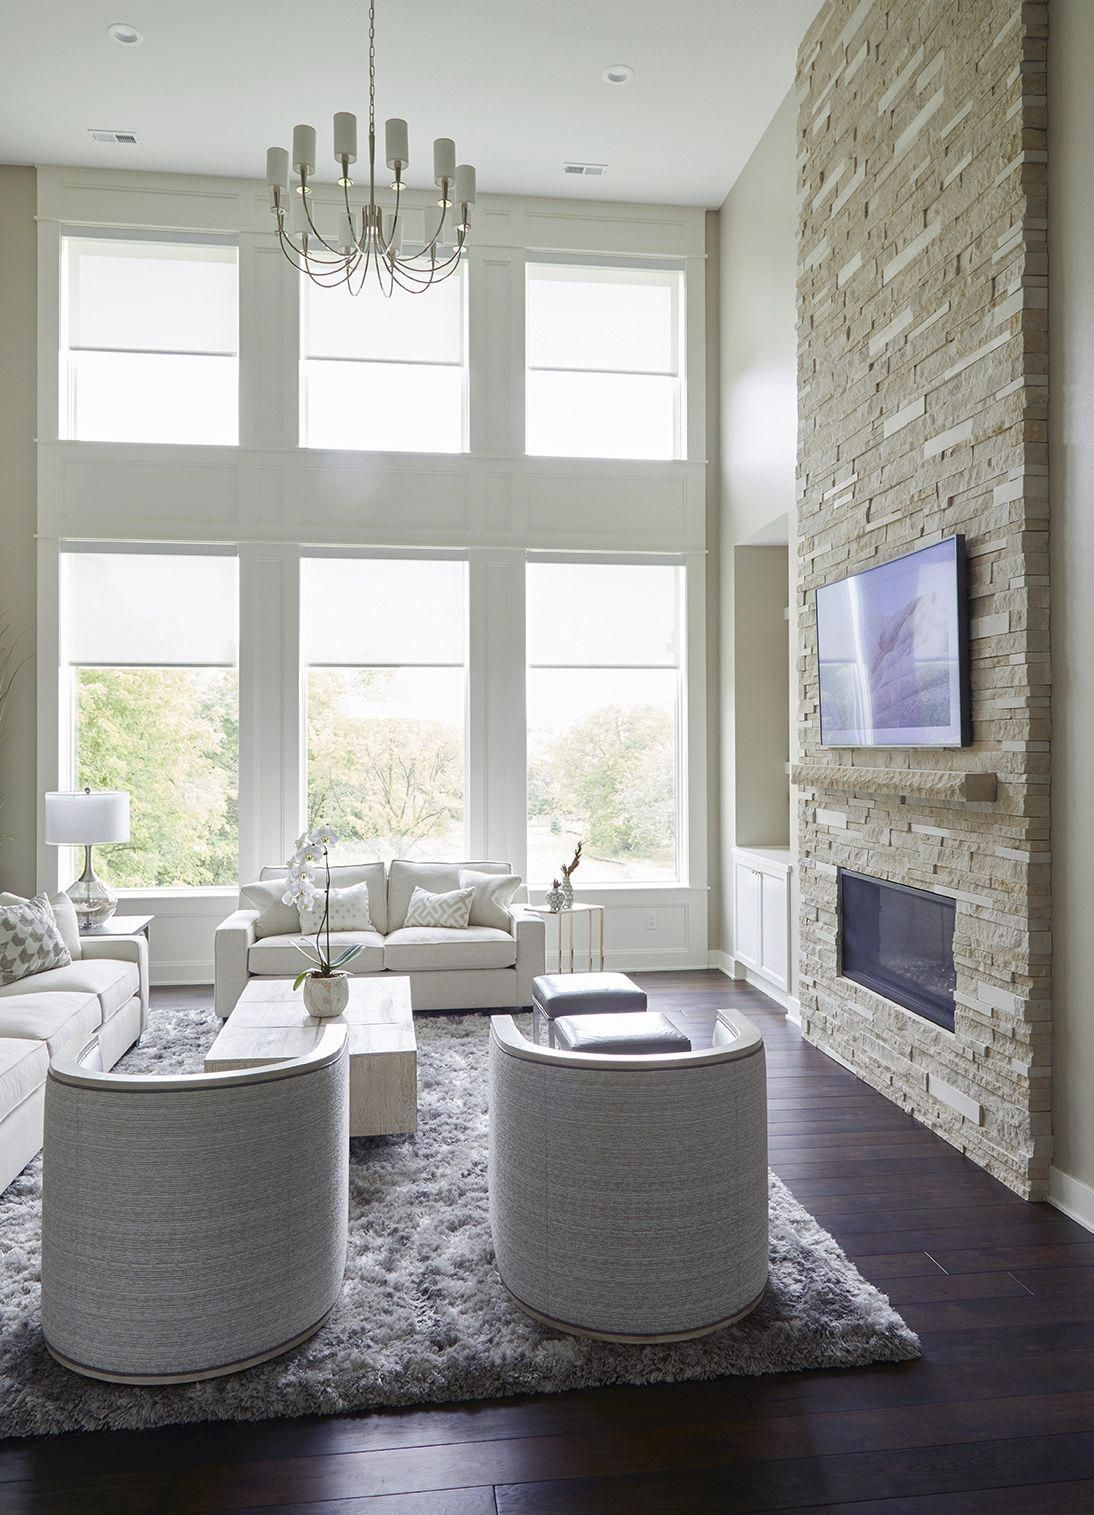 Transitional living room design with stacked stone fireplace and dark hickory floors by Jillian Lare Interior & Transitional living room design with stacked stone fireplace and ...